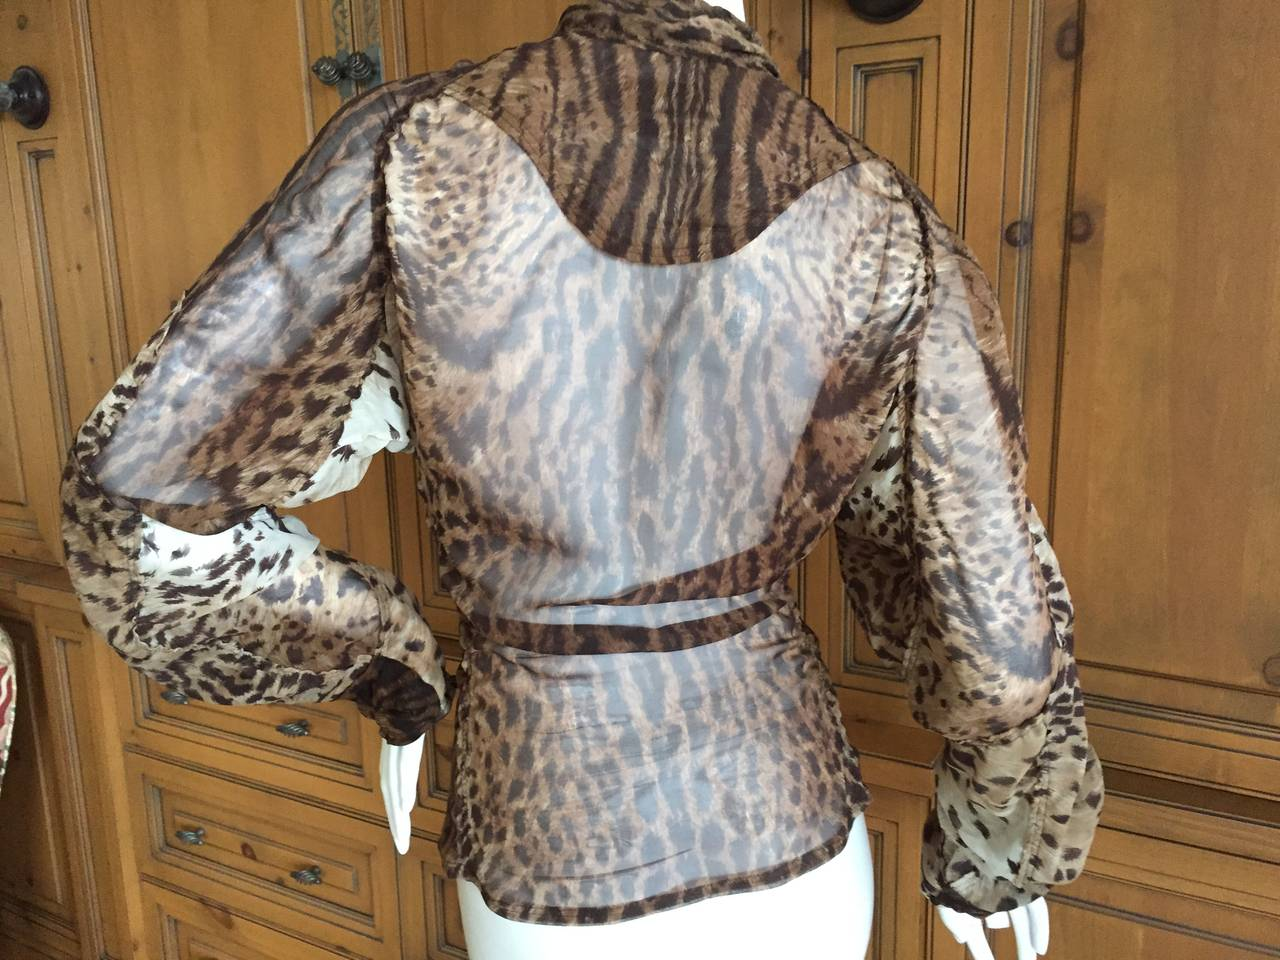 Yves Saint Laurent by Tom Ford Mombassa Collection Sheer Silk Leopard Top 4